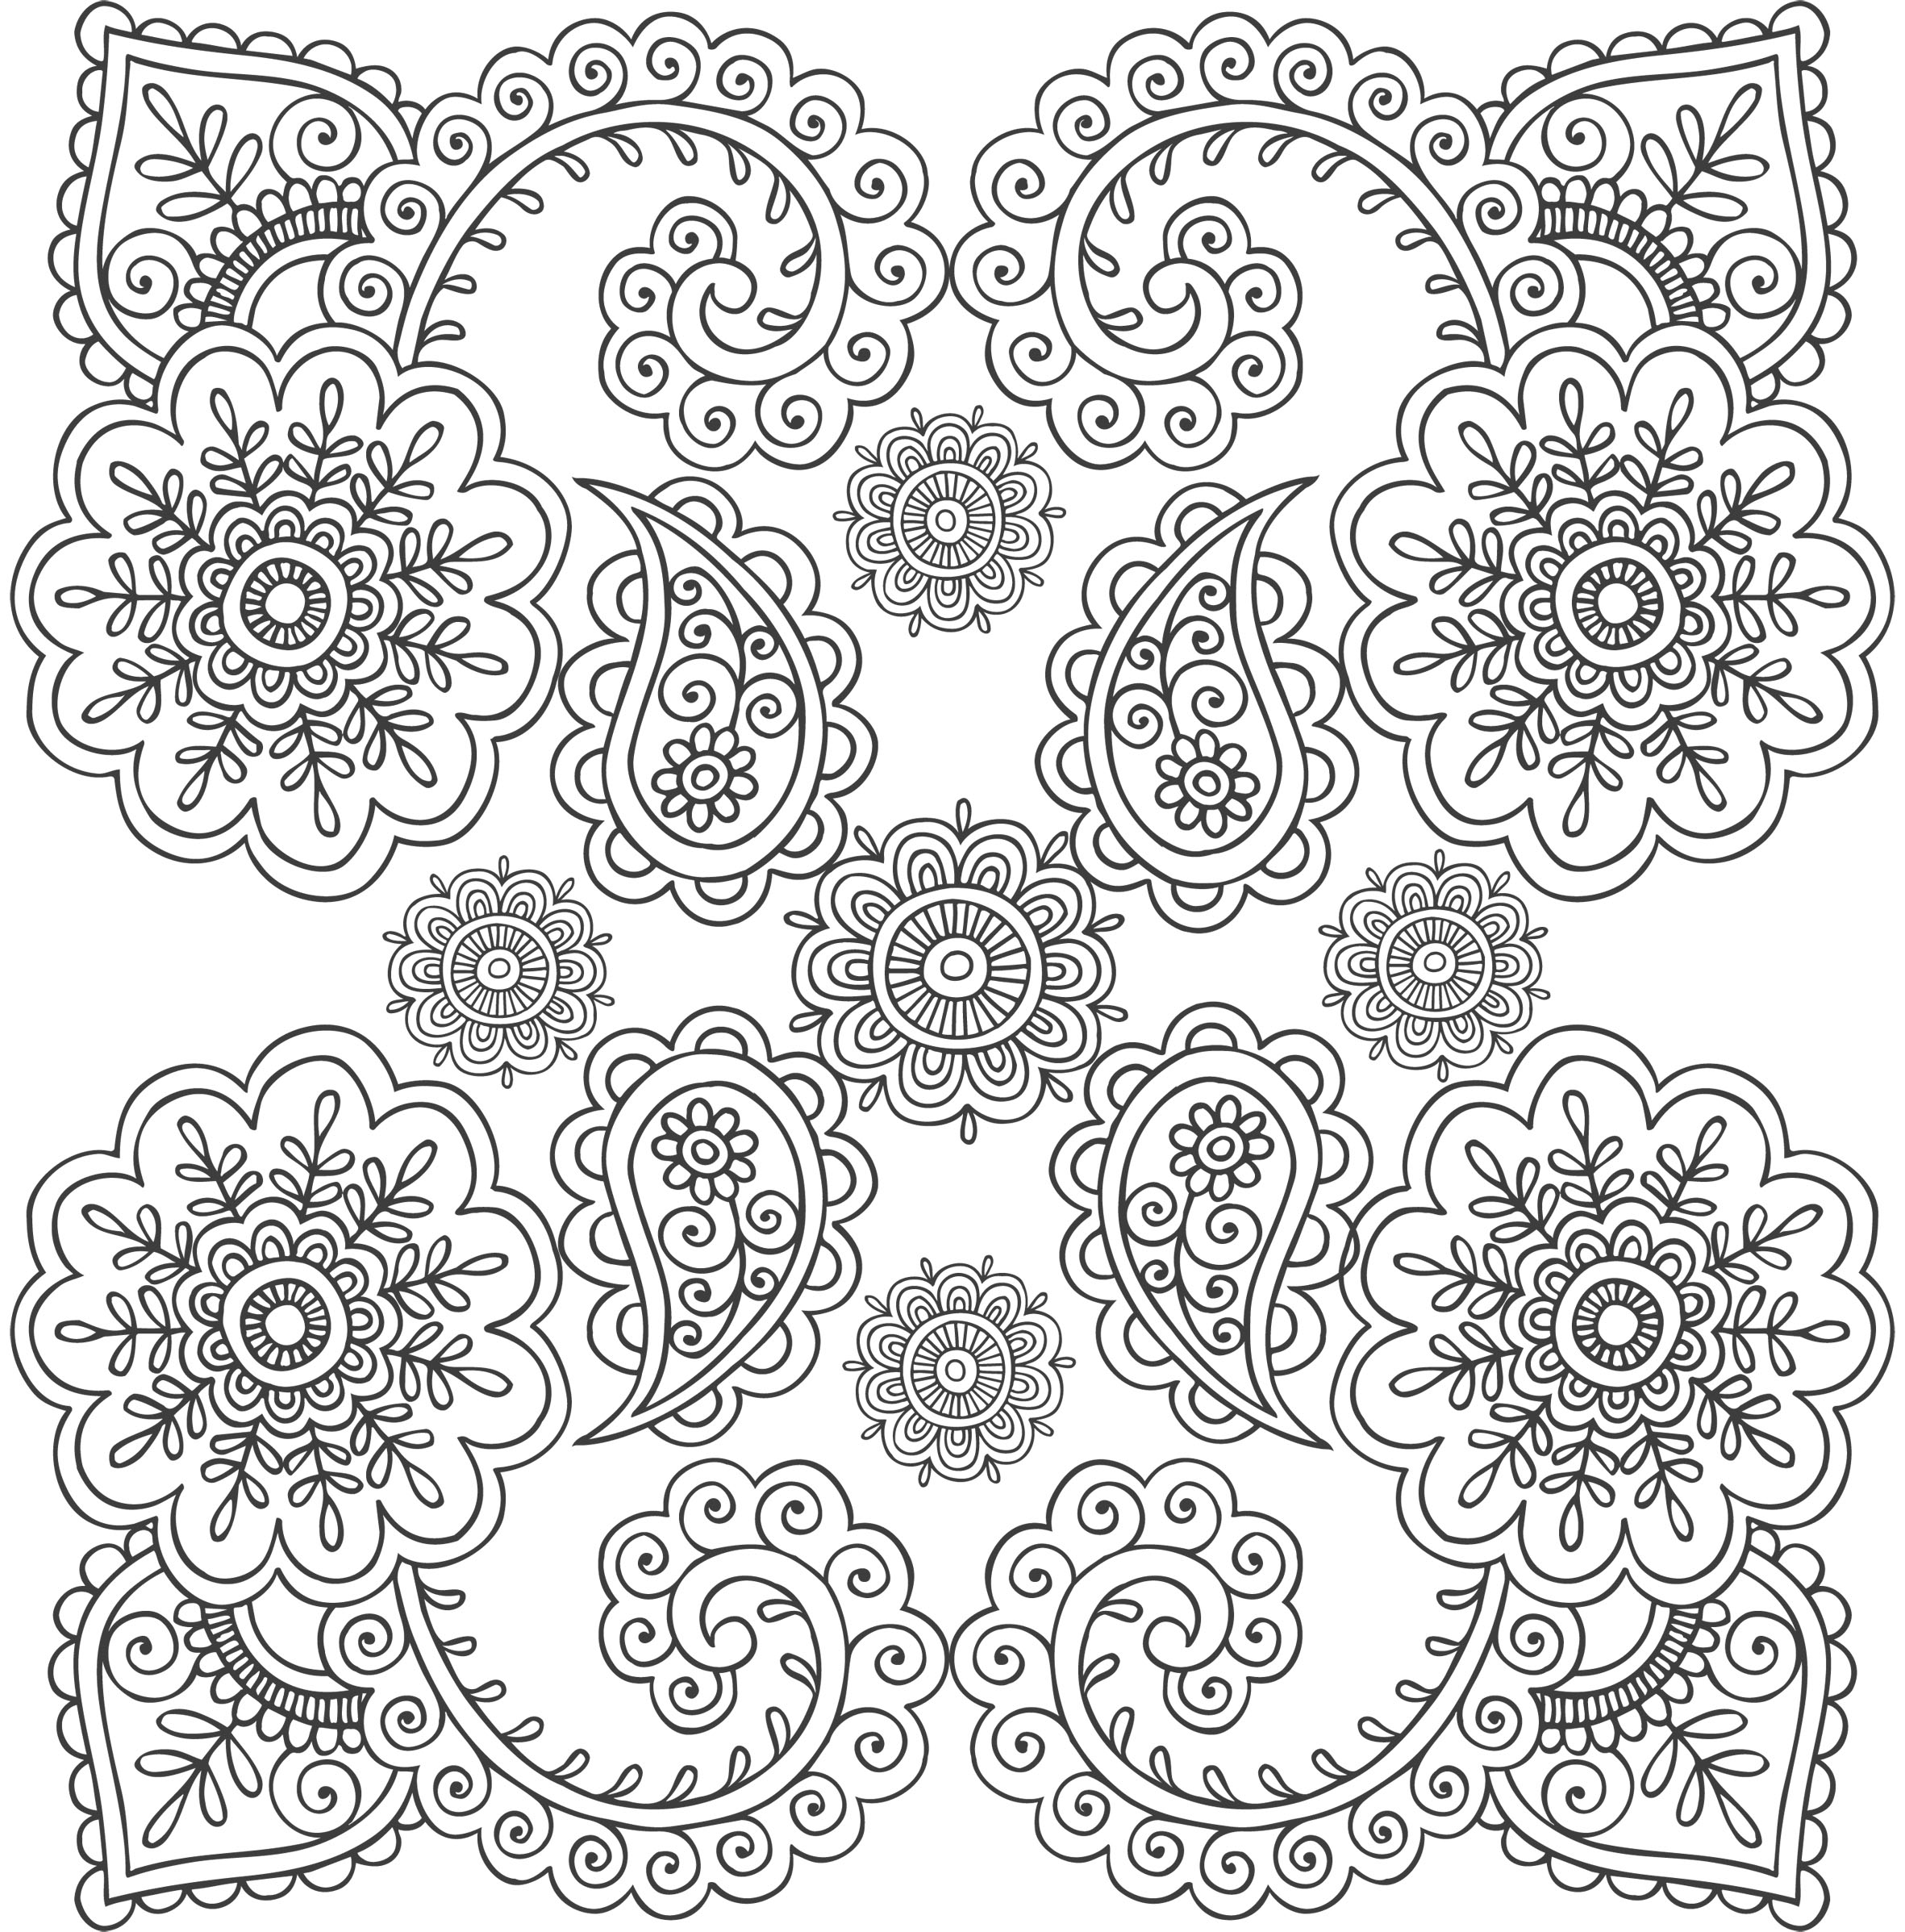 Anti-stress (Relaxation) – Printable coloring pages